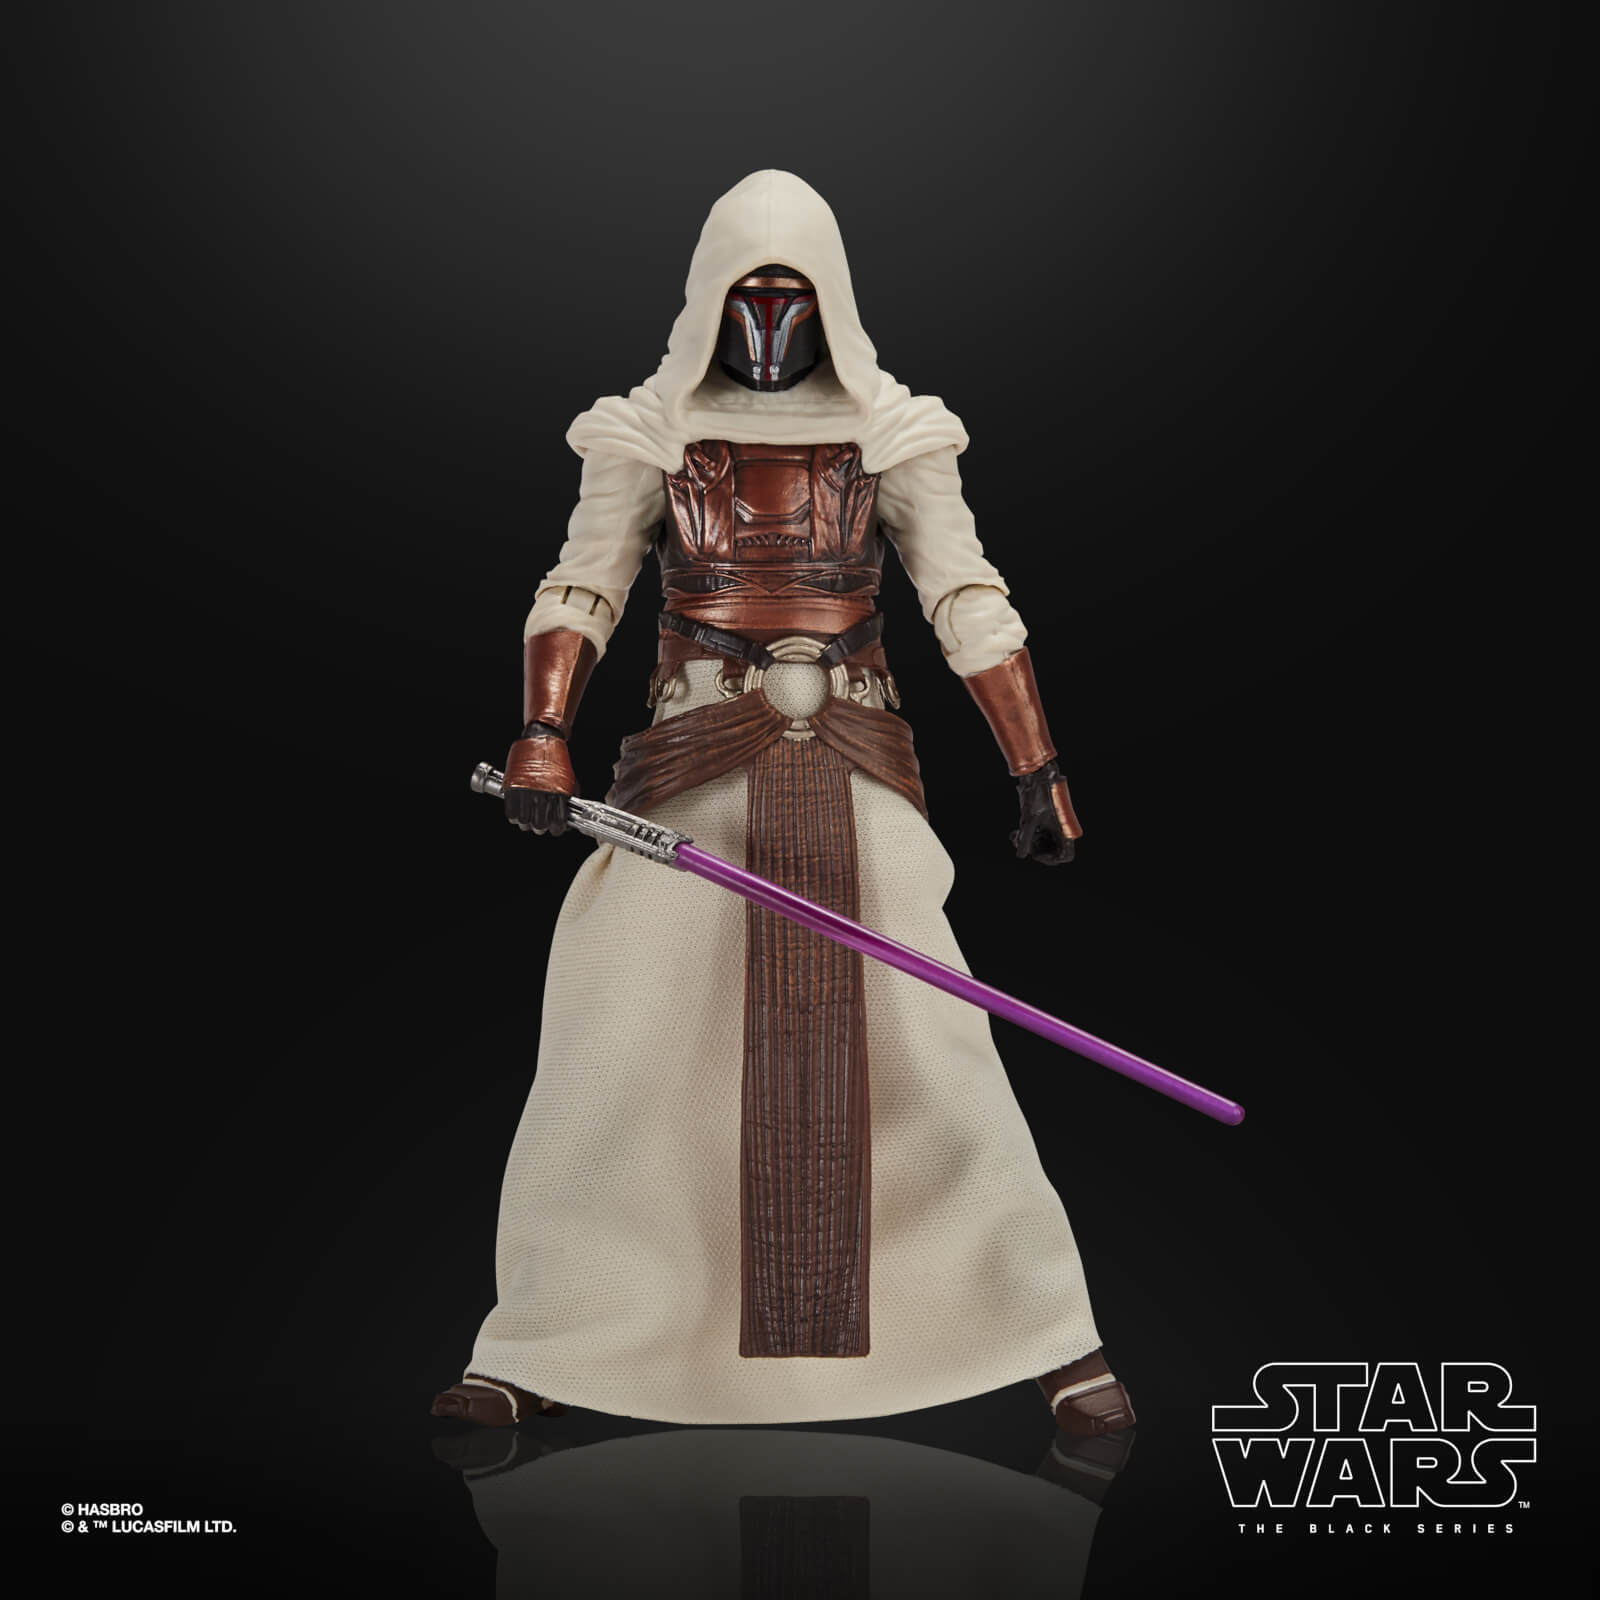 Image of Hasbro Star Wars The Black Series Gaming Greats Jedi Knight Revan Action Figure